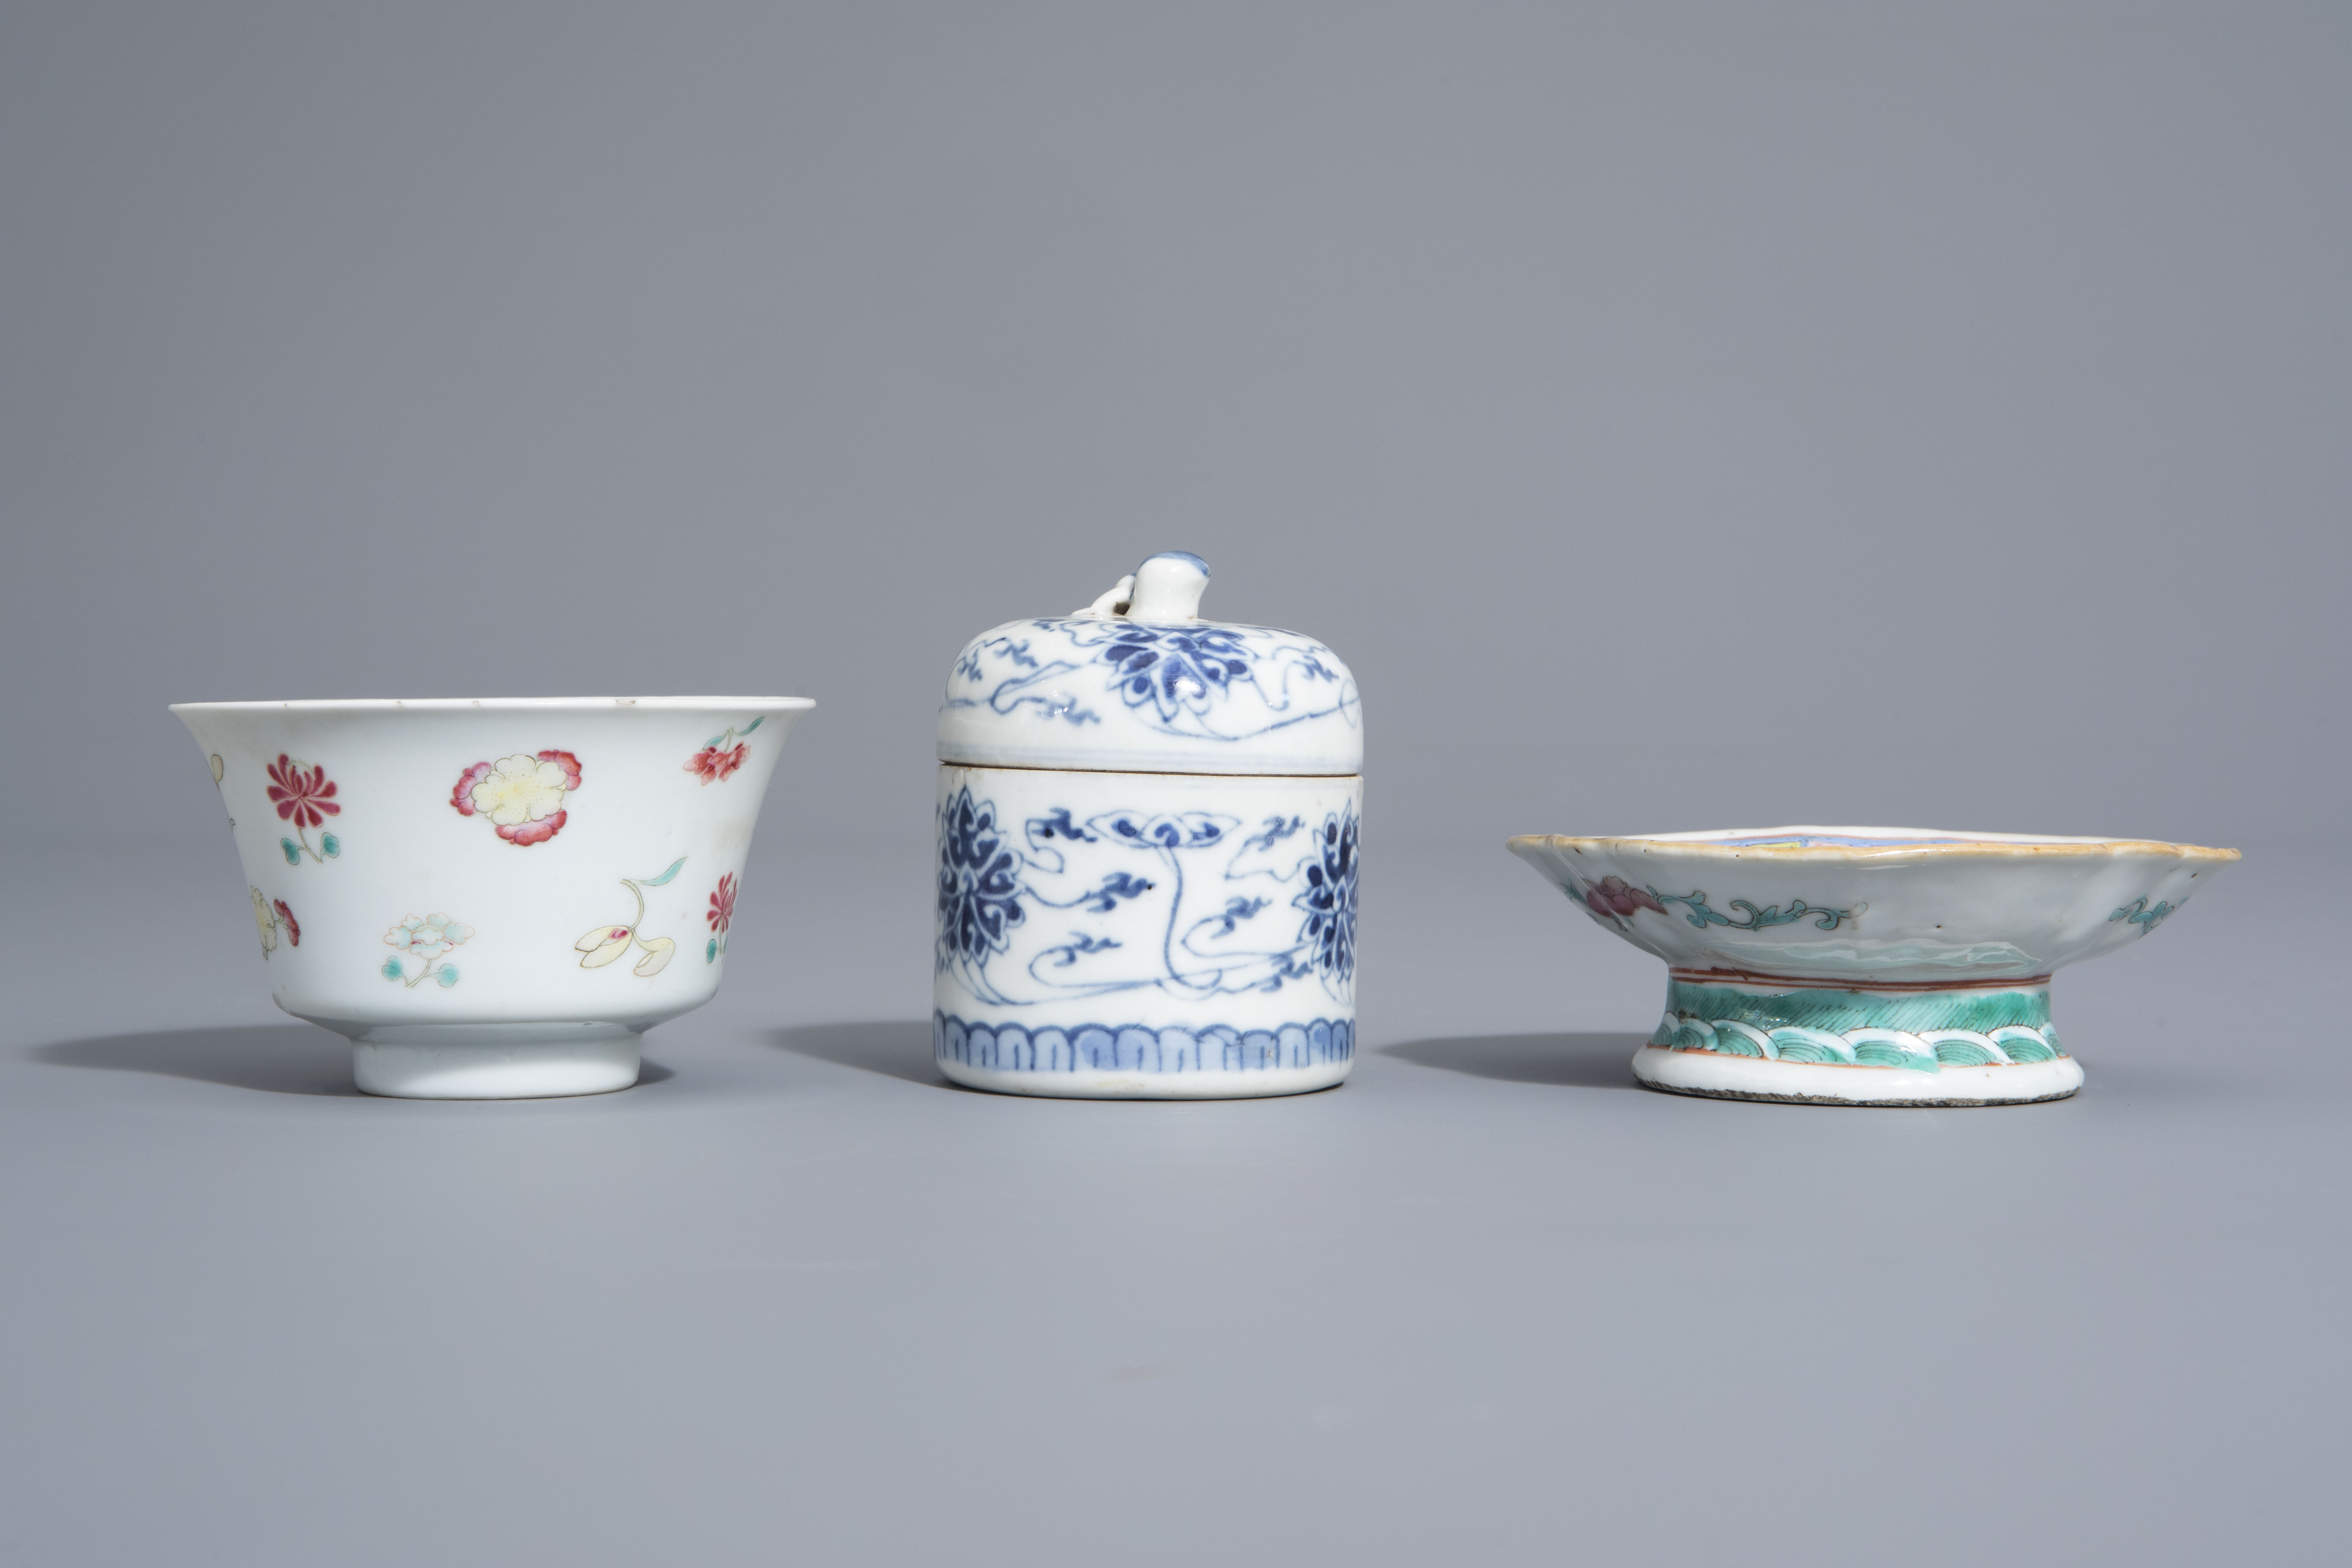 A varied collection of Chinese blue and white and famille rose porcelain, 19th/20th C. - Image 10 of 15